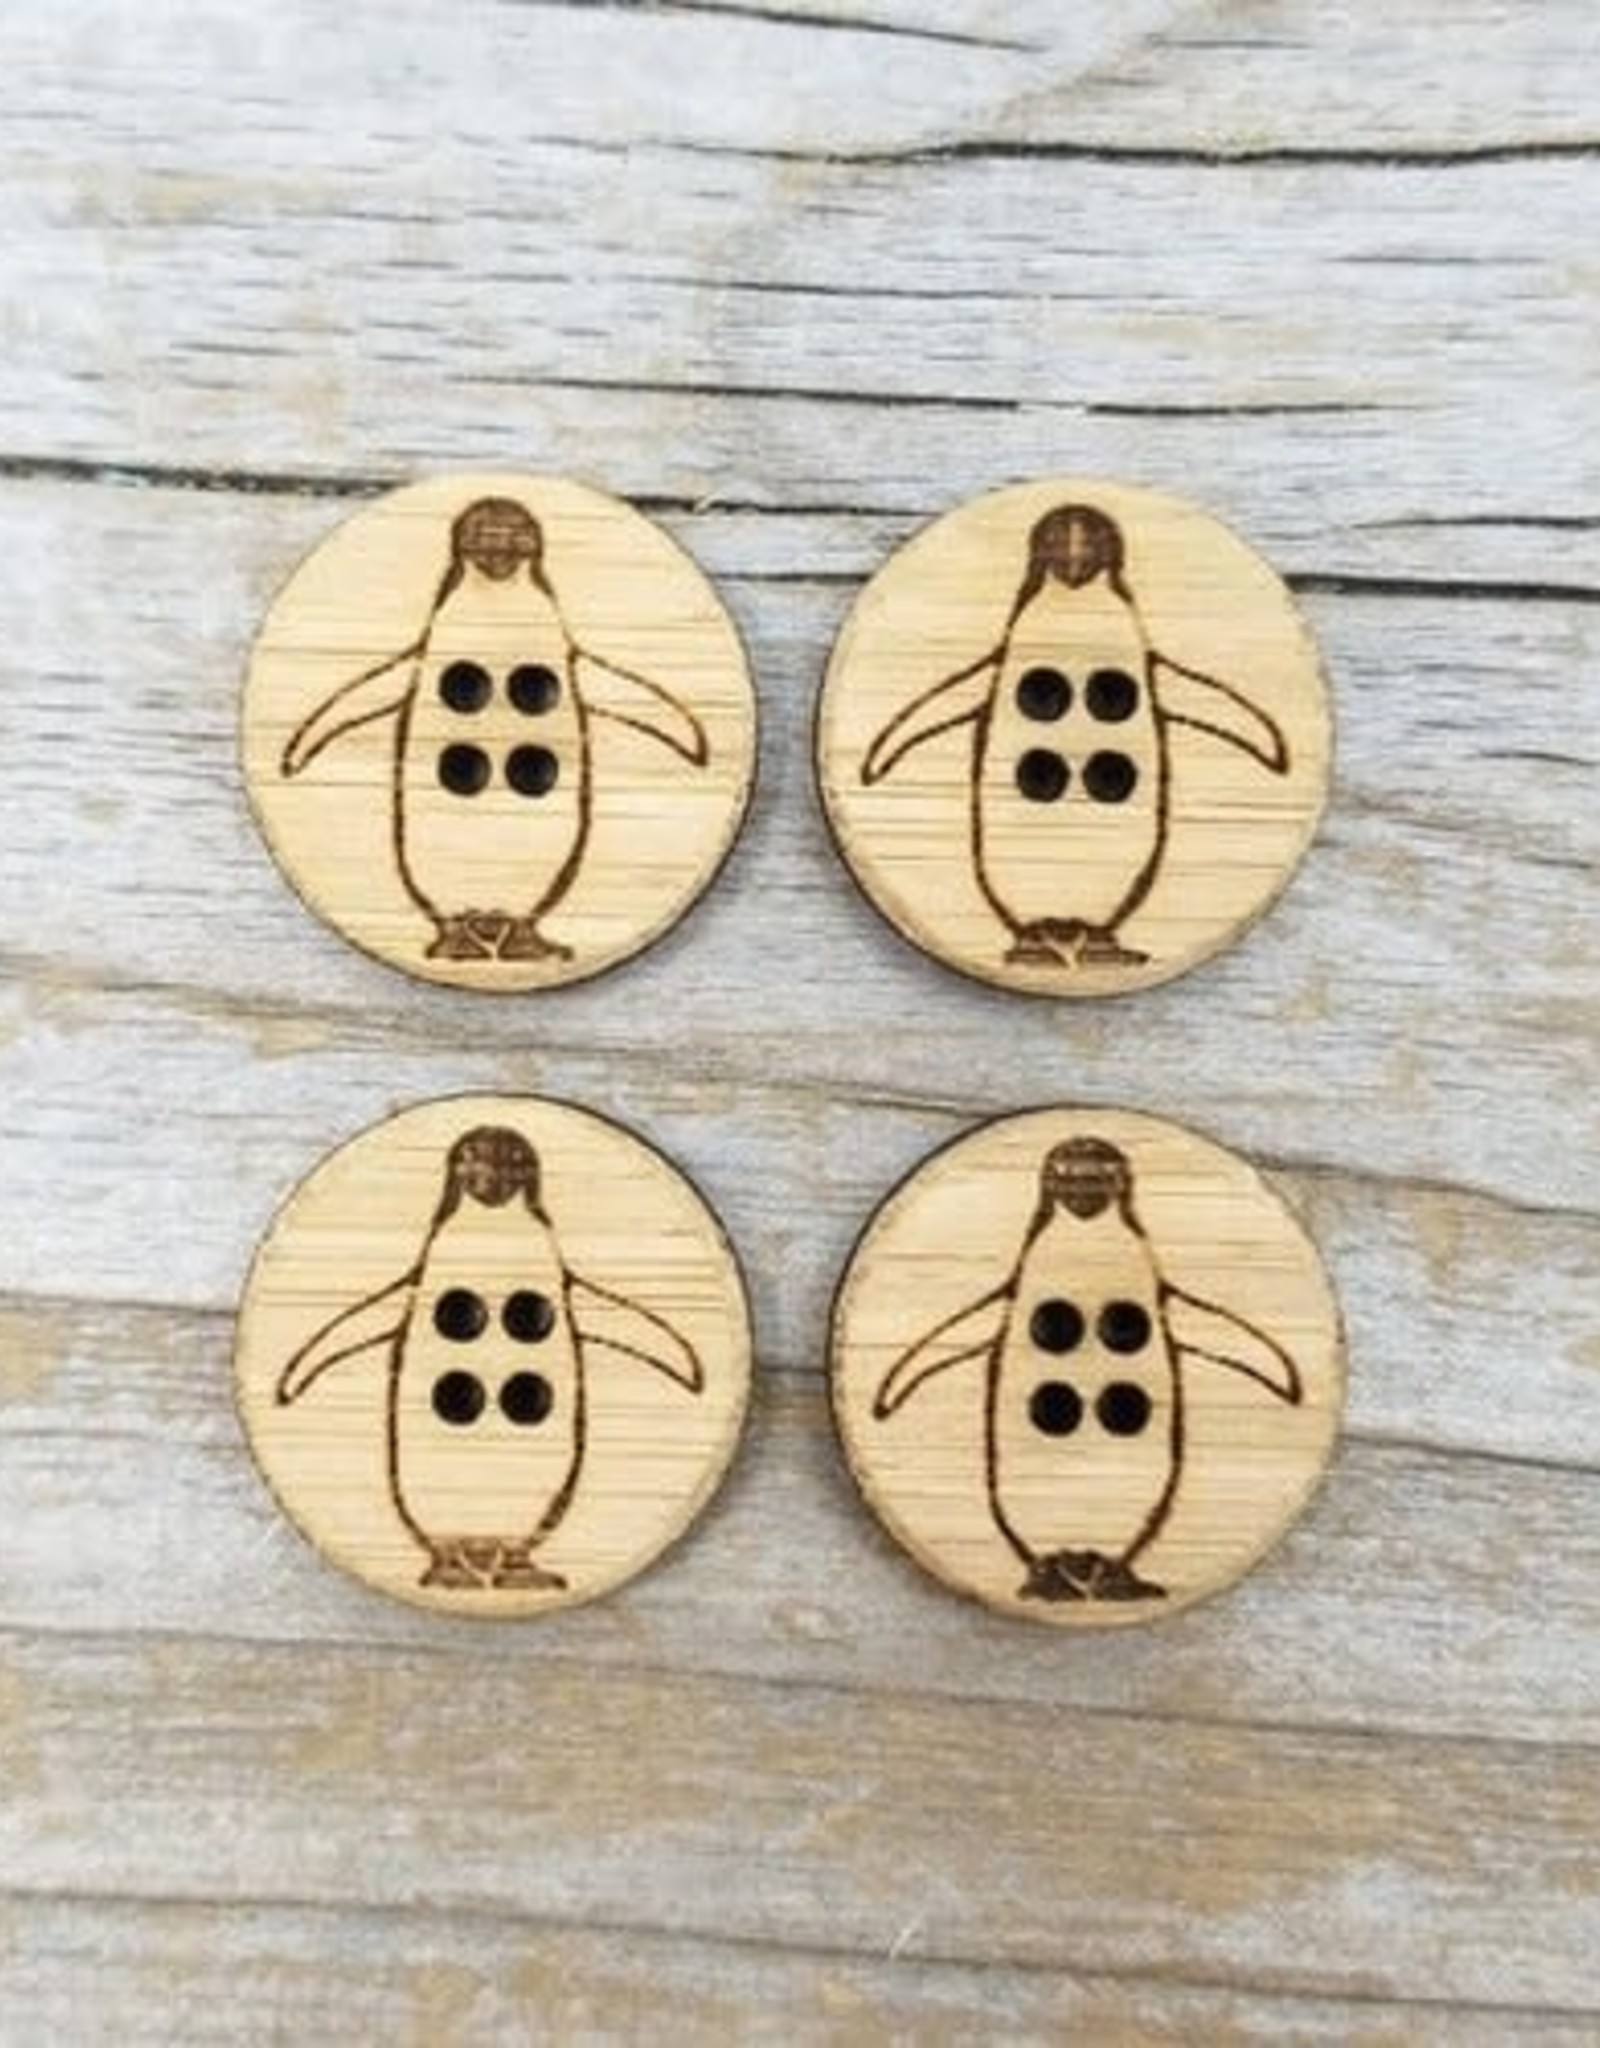 Katrinkles Buttons & Tools Peguin Buttons - Card of 4